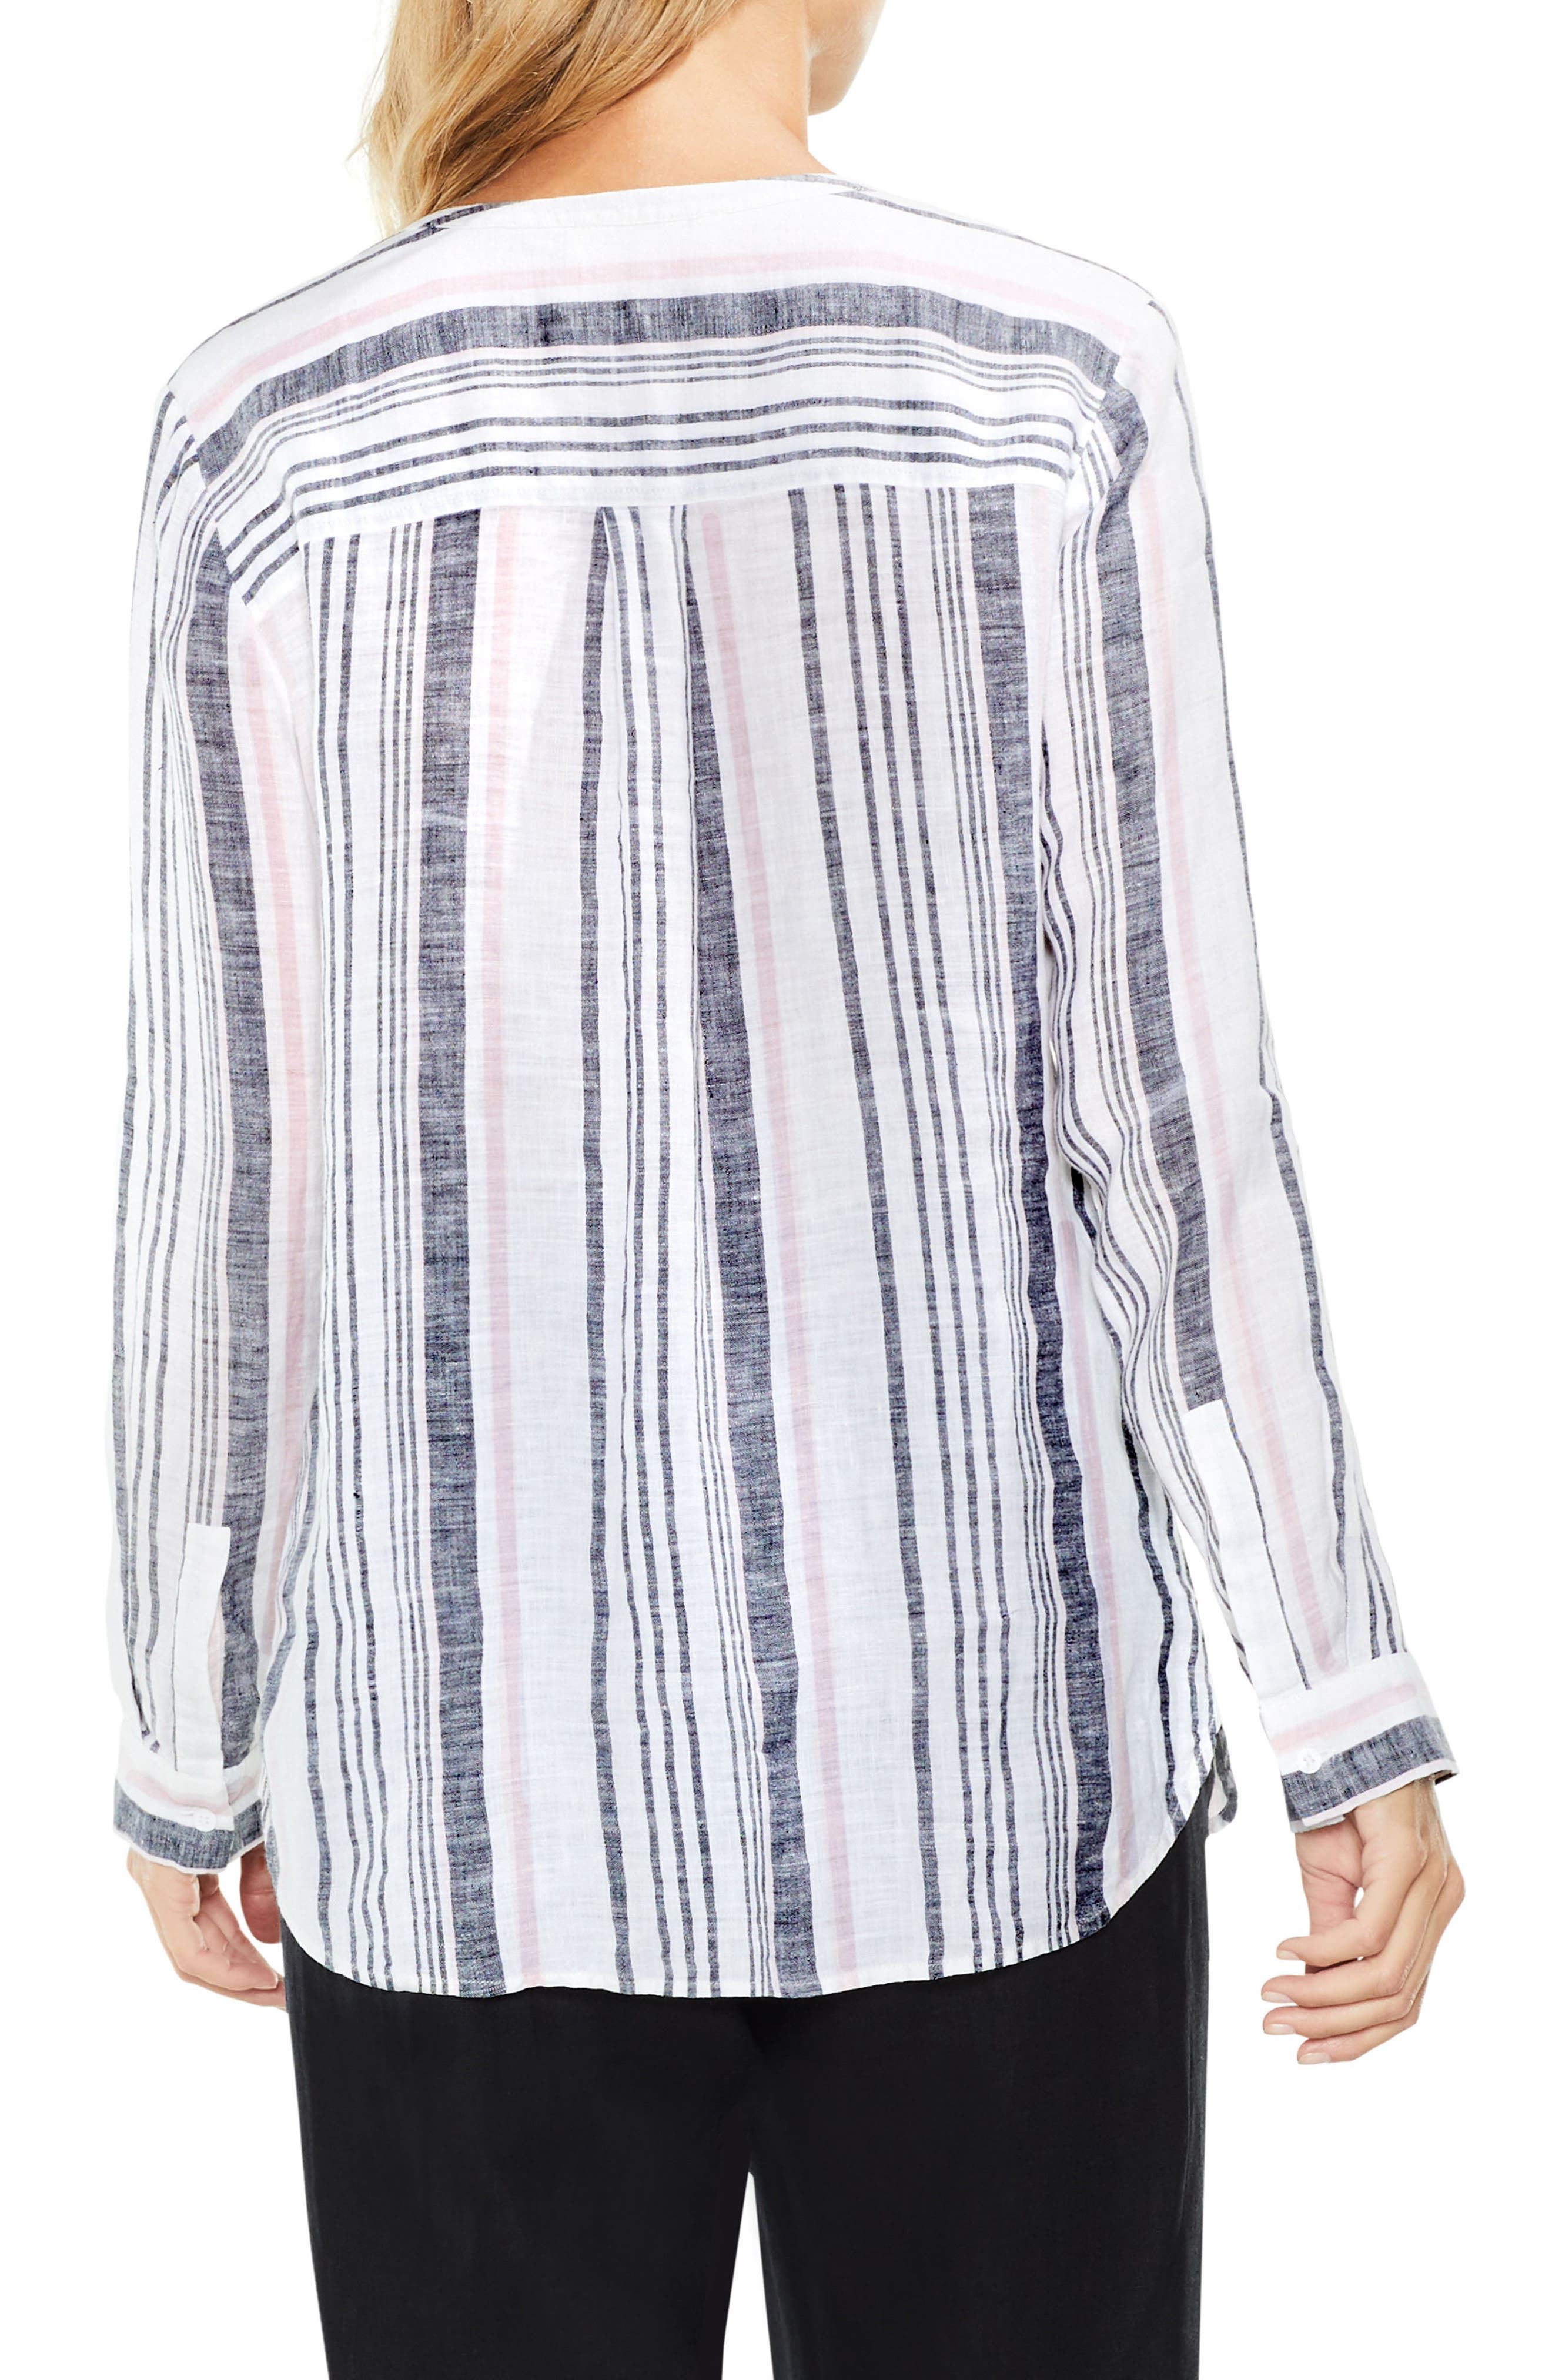 Variegated Step Stripe Top,                             Alternate thumbnail 2, color,                             652